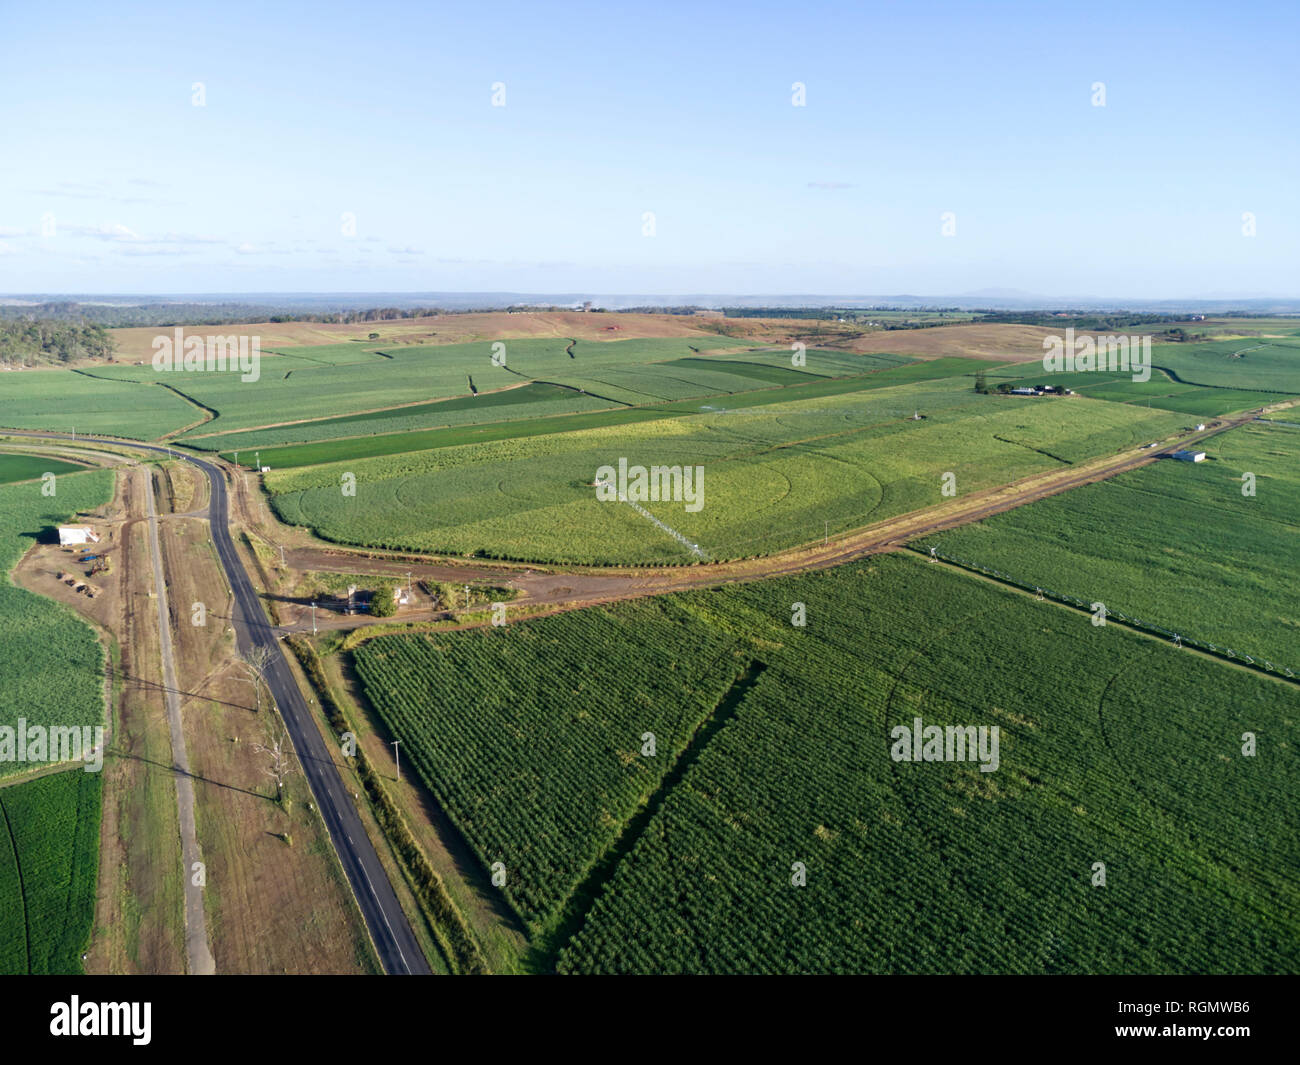 Aerial of centre pivoted irrigated sugar cane fields near Gin Gin Queensland Australia - Stock Image